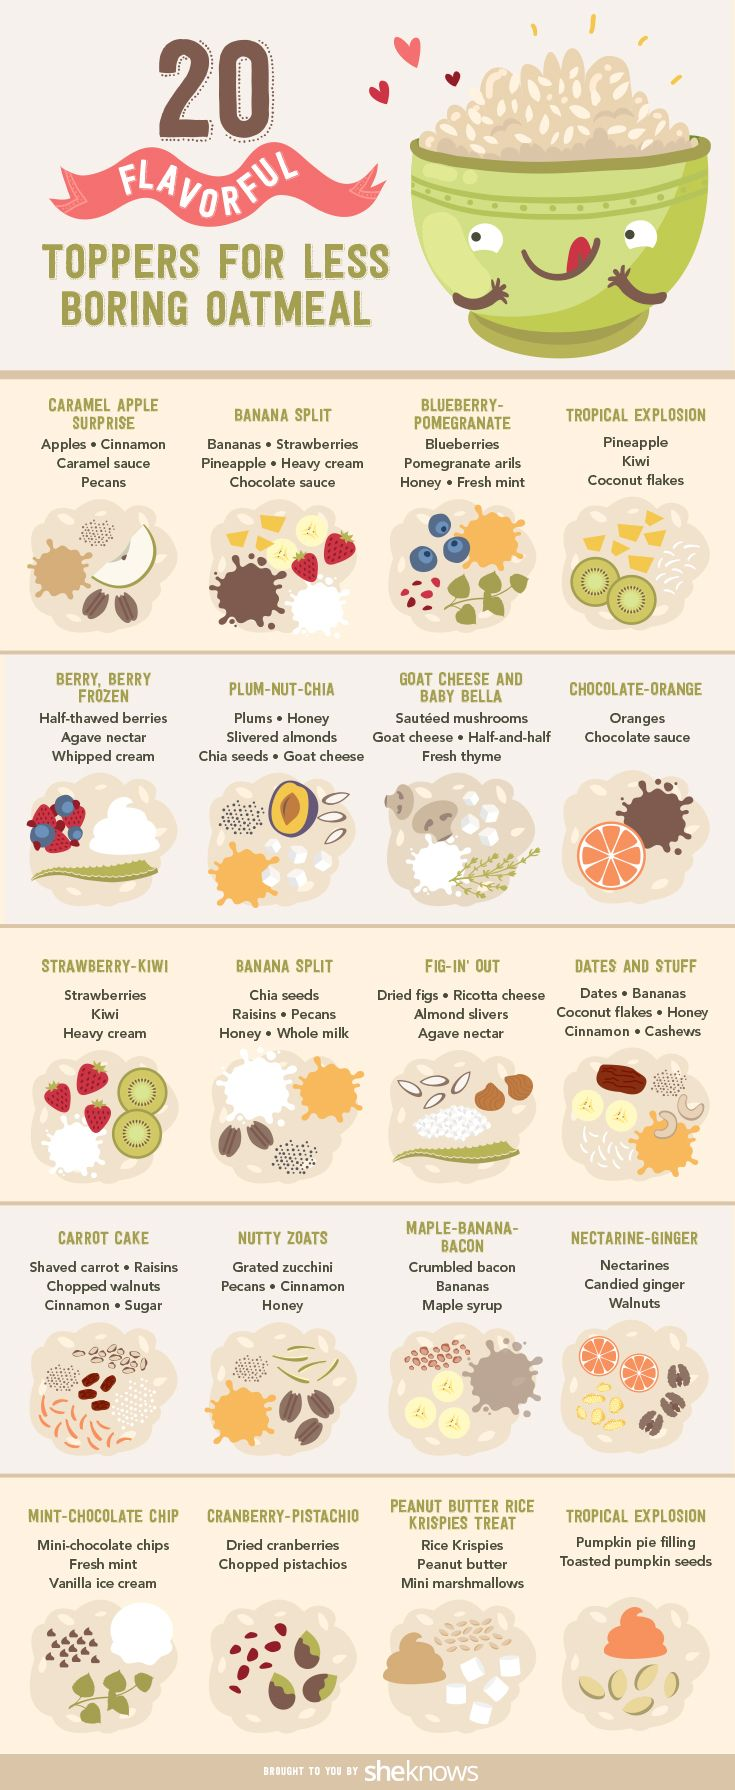 Call oatmeal boring? Not with these flavor combinations